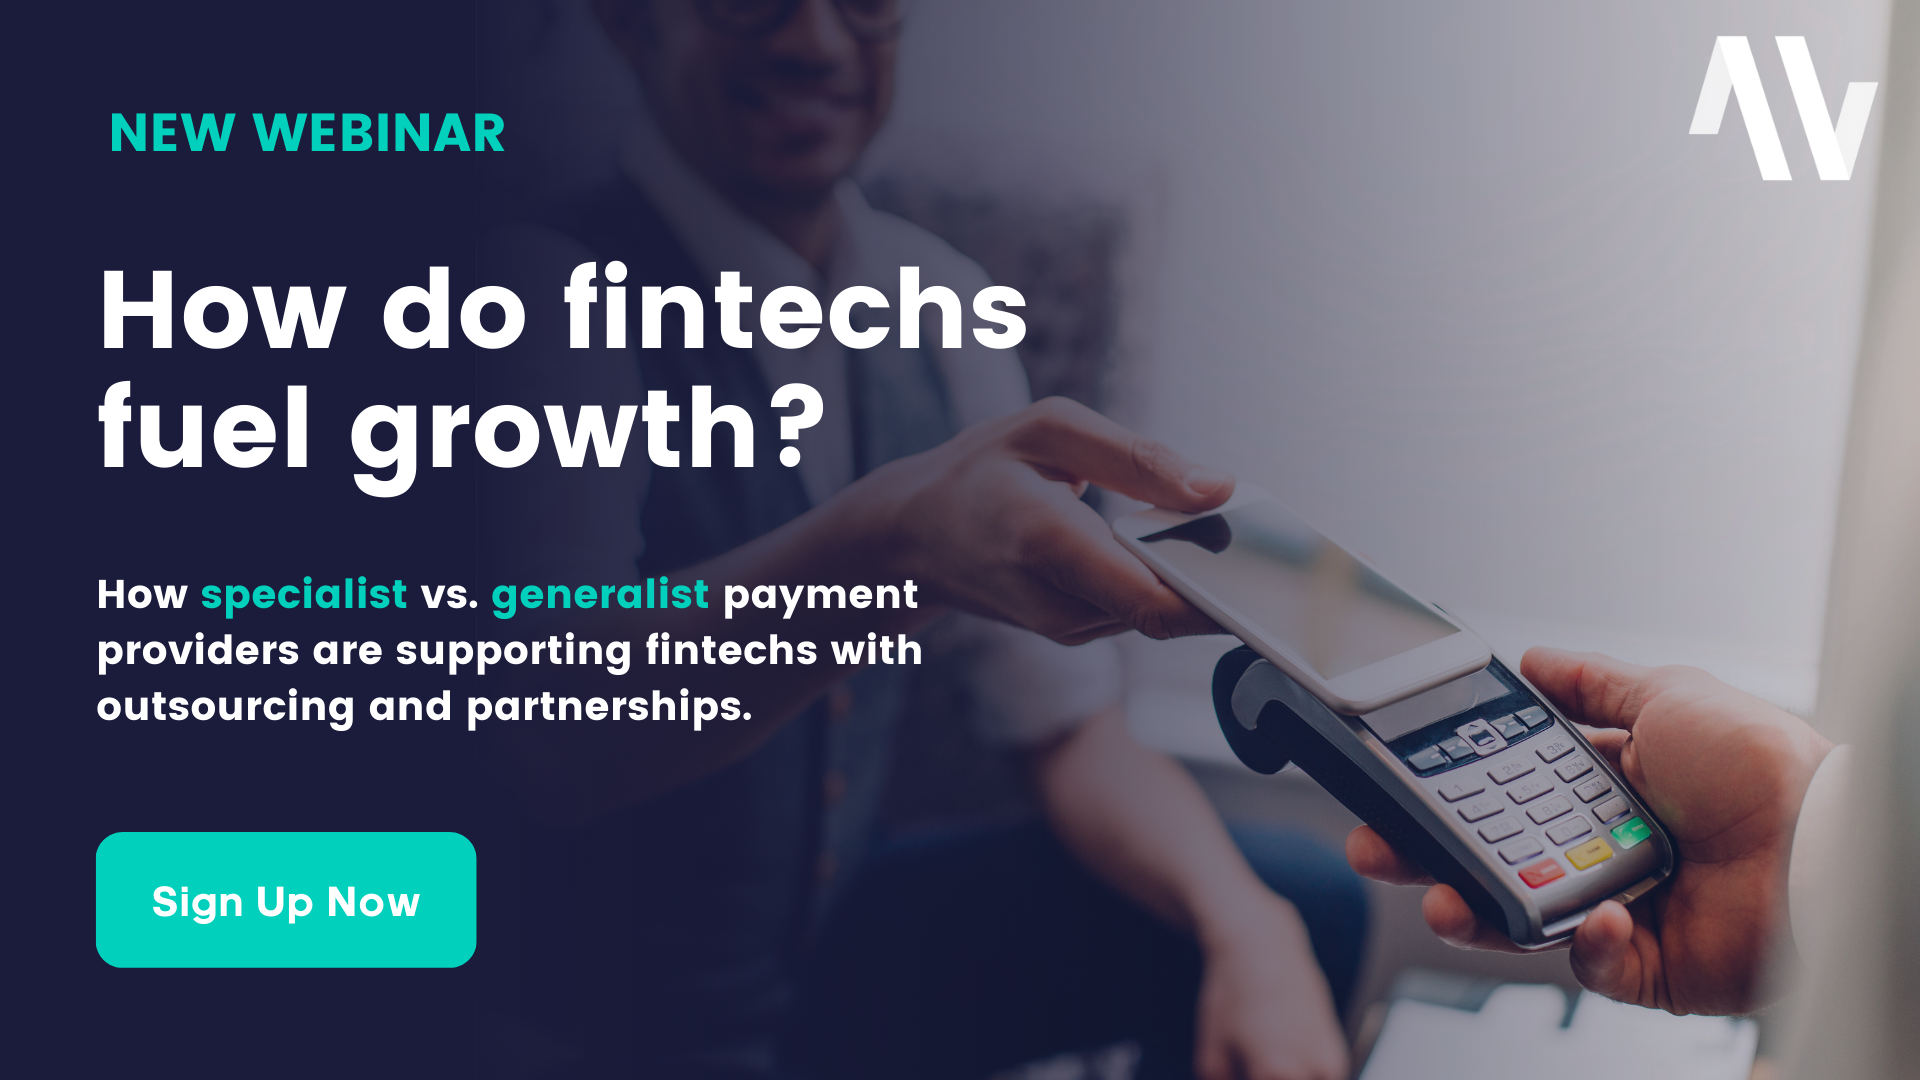 How do FinTechs fuel growth? A look at partnerships and outsourcing to specialists vs. generalists